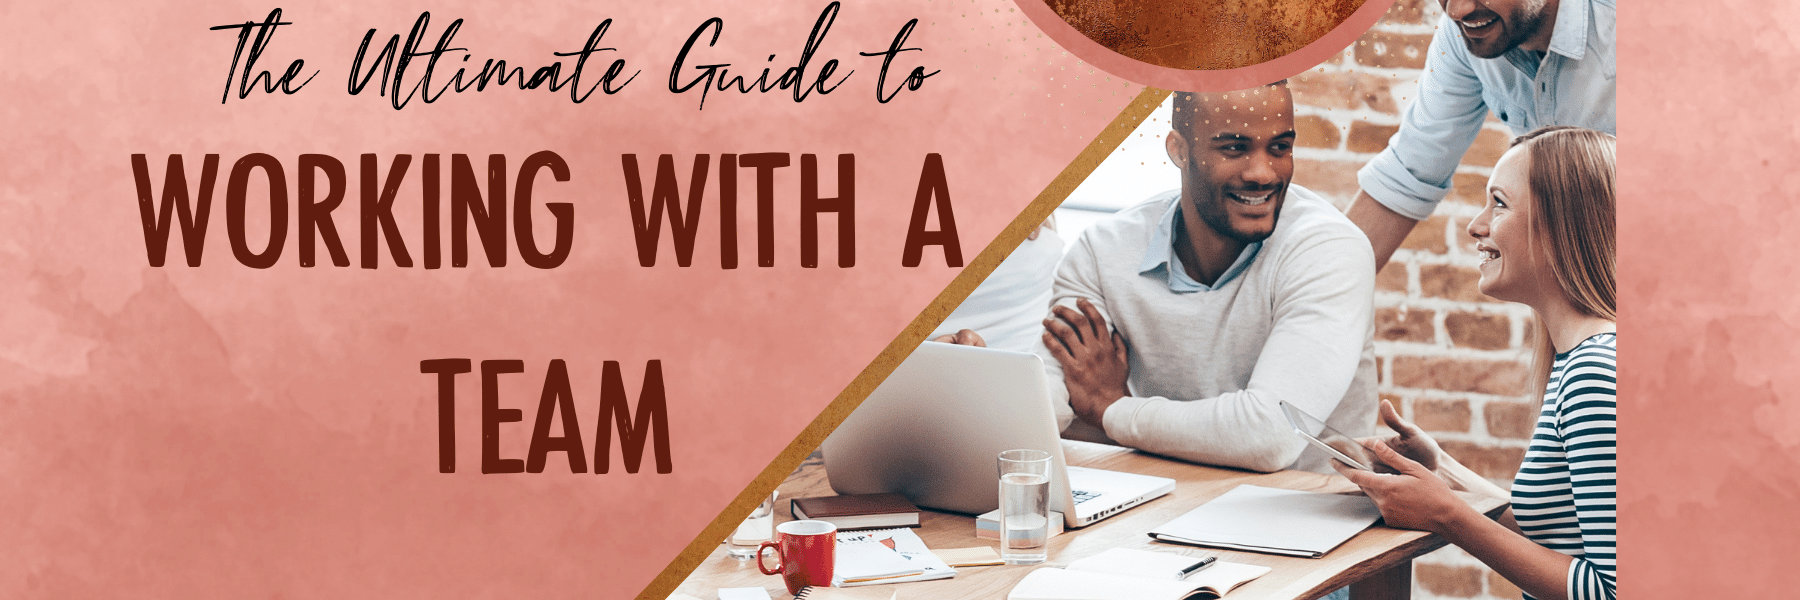 The Ultimate Guide to Working Effectively With a Team